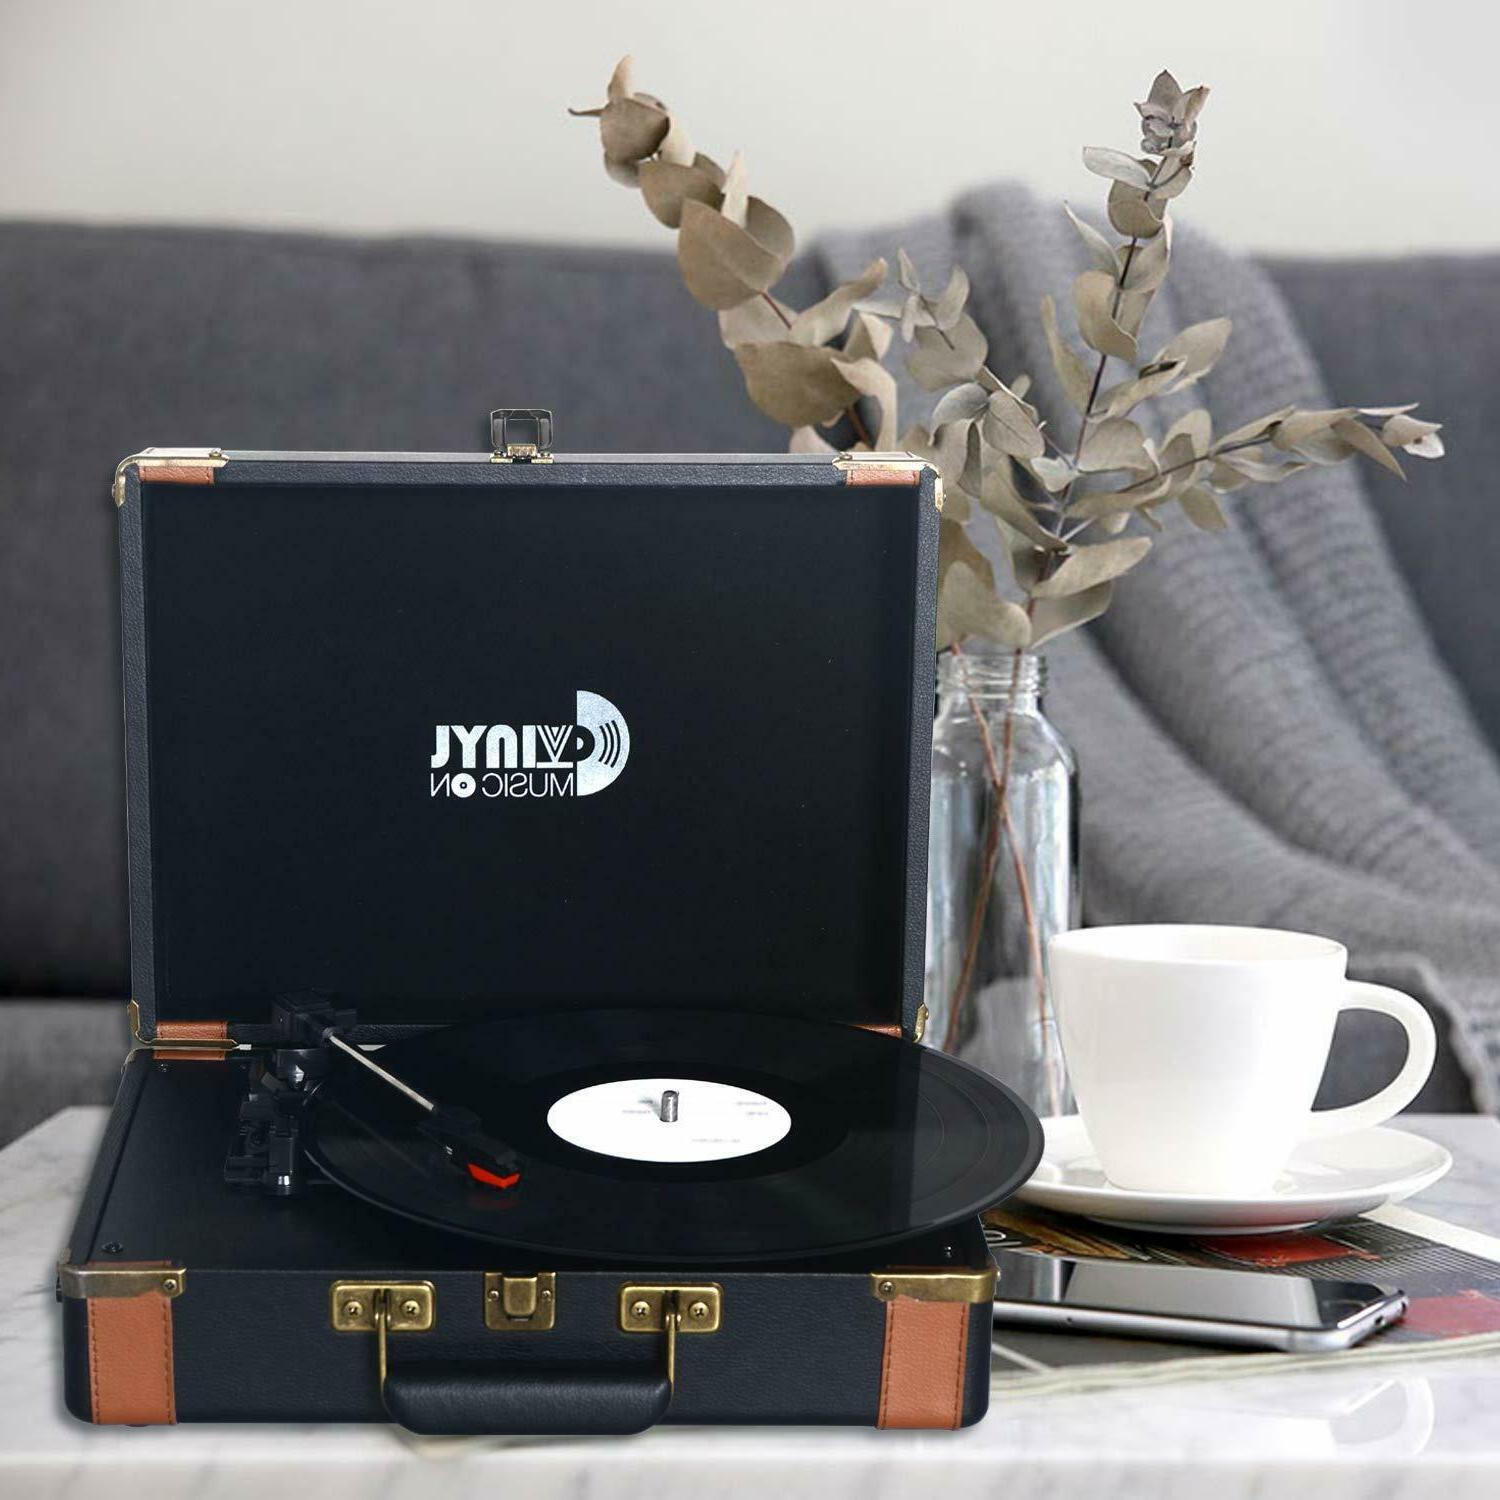 VMO Suitcase Turntable Speakers,Portable Vinyl Record Player with